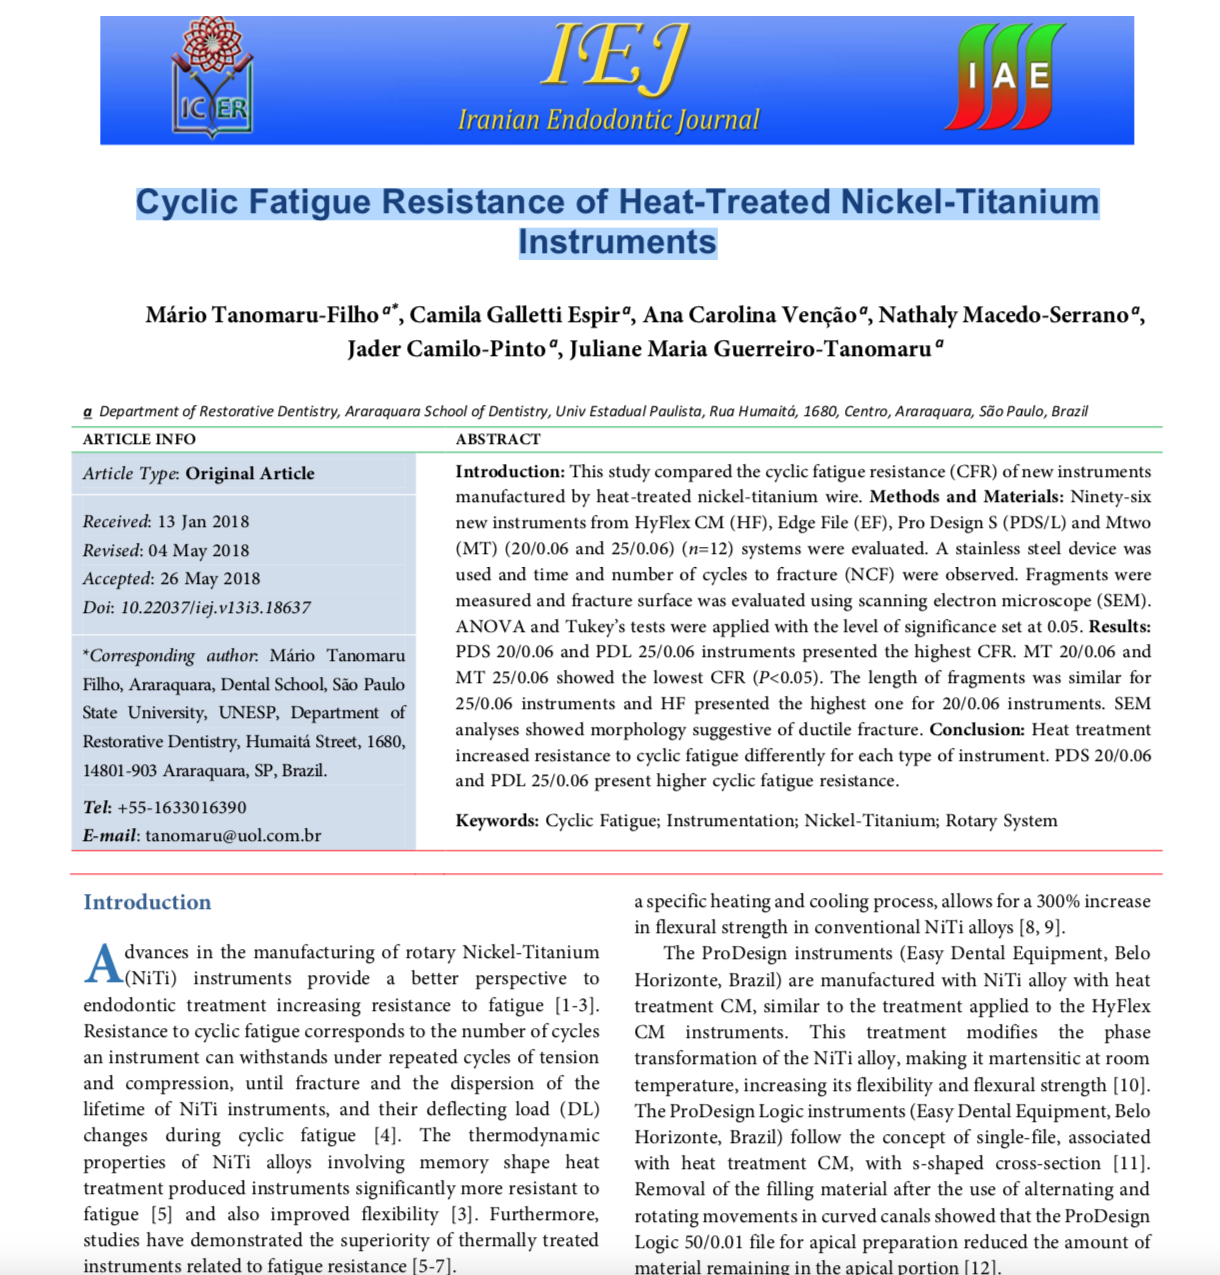 STUDY: Iranian Endodontic Journal: Cyclic Fatigue Resistance